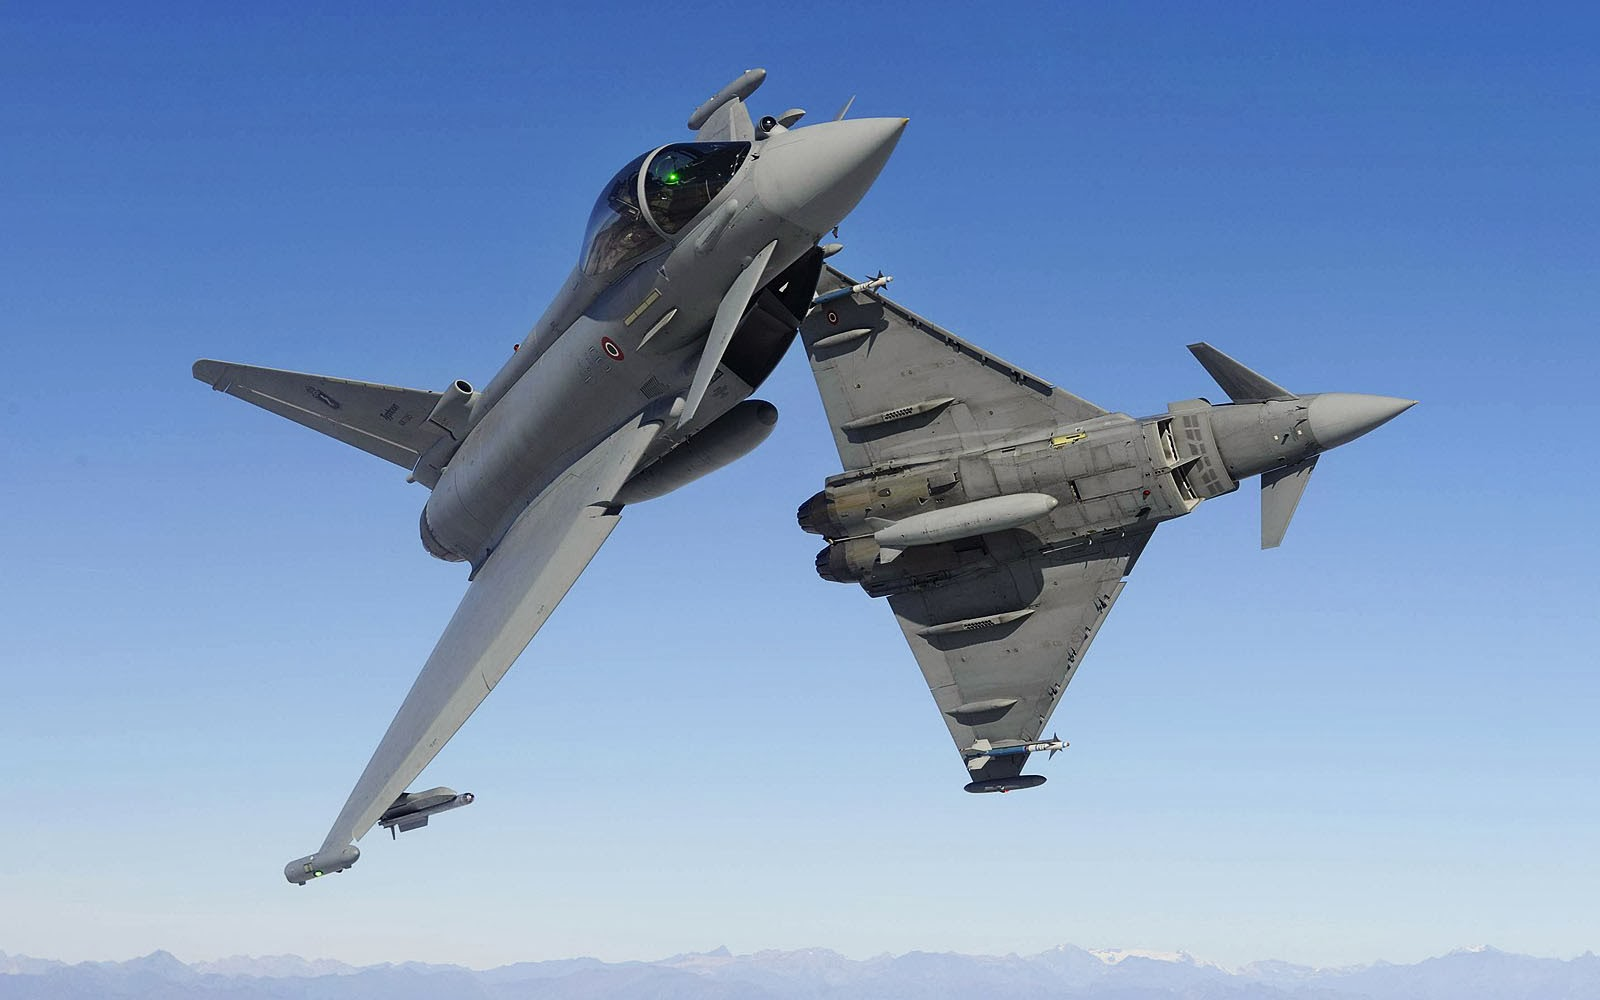 Aerei Da Caccia Tramonto : Wallpapers eurofighter typhoon